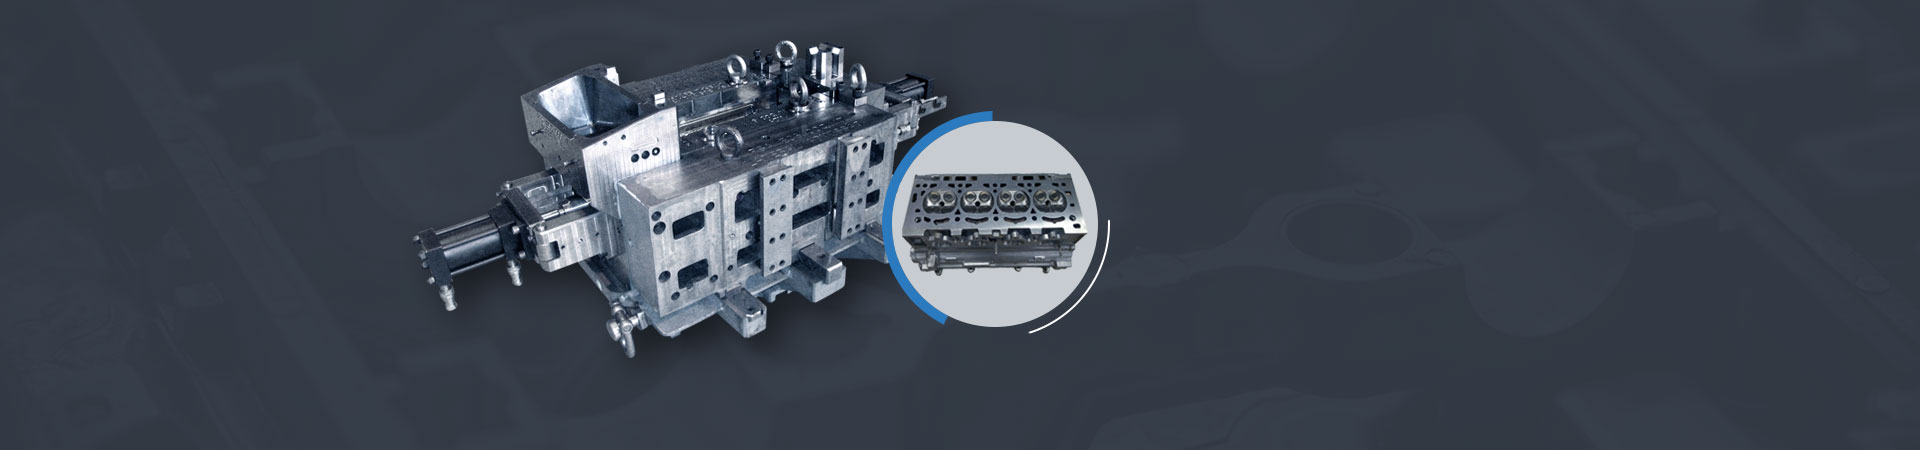 Gravity Die Casting Permanent Mold